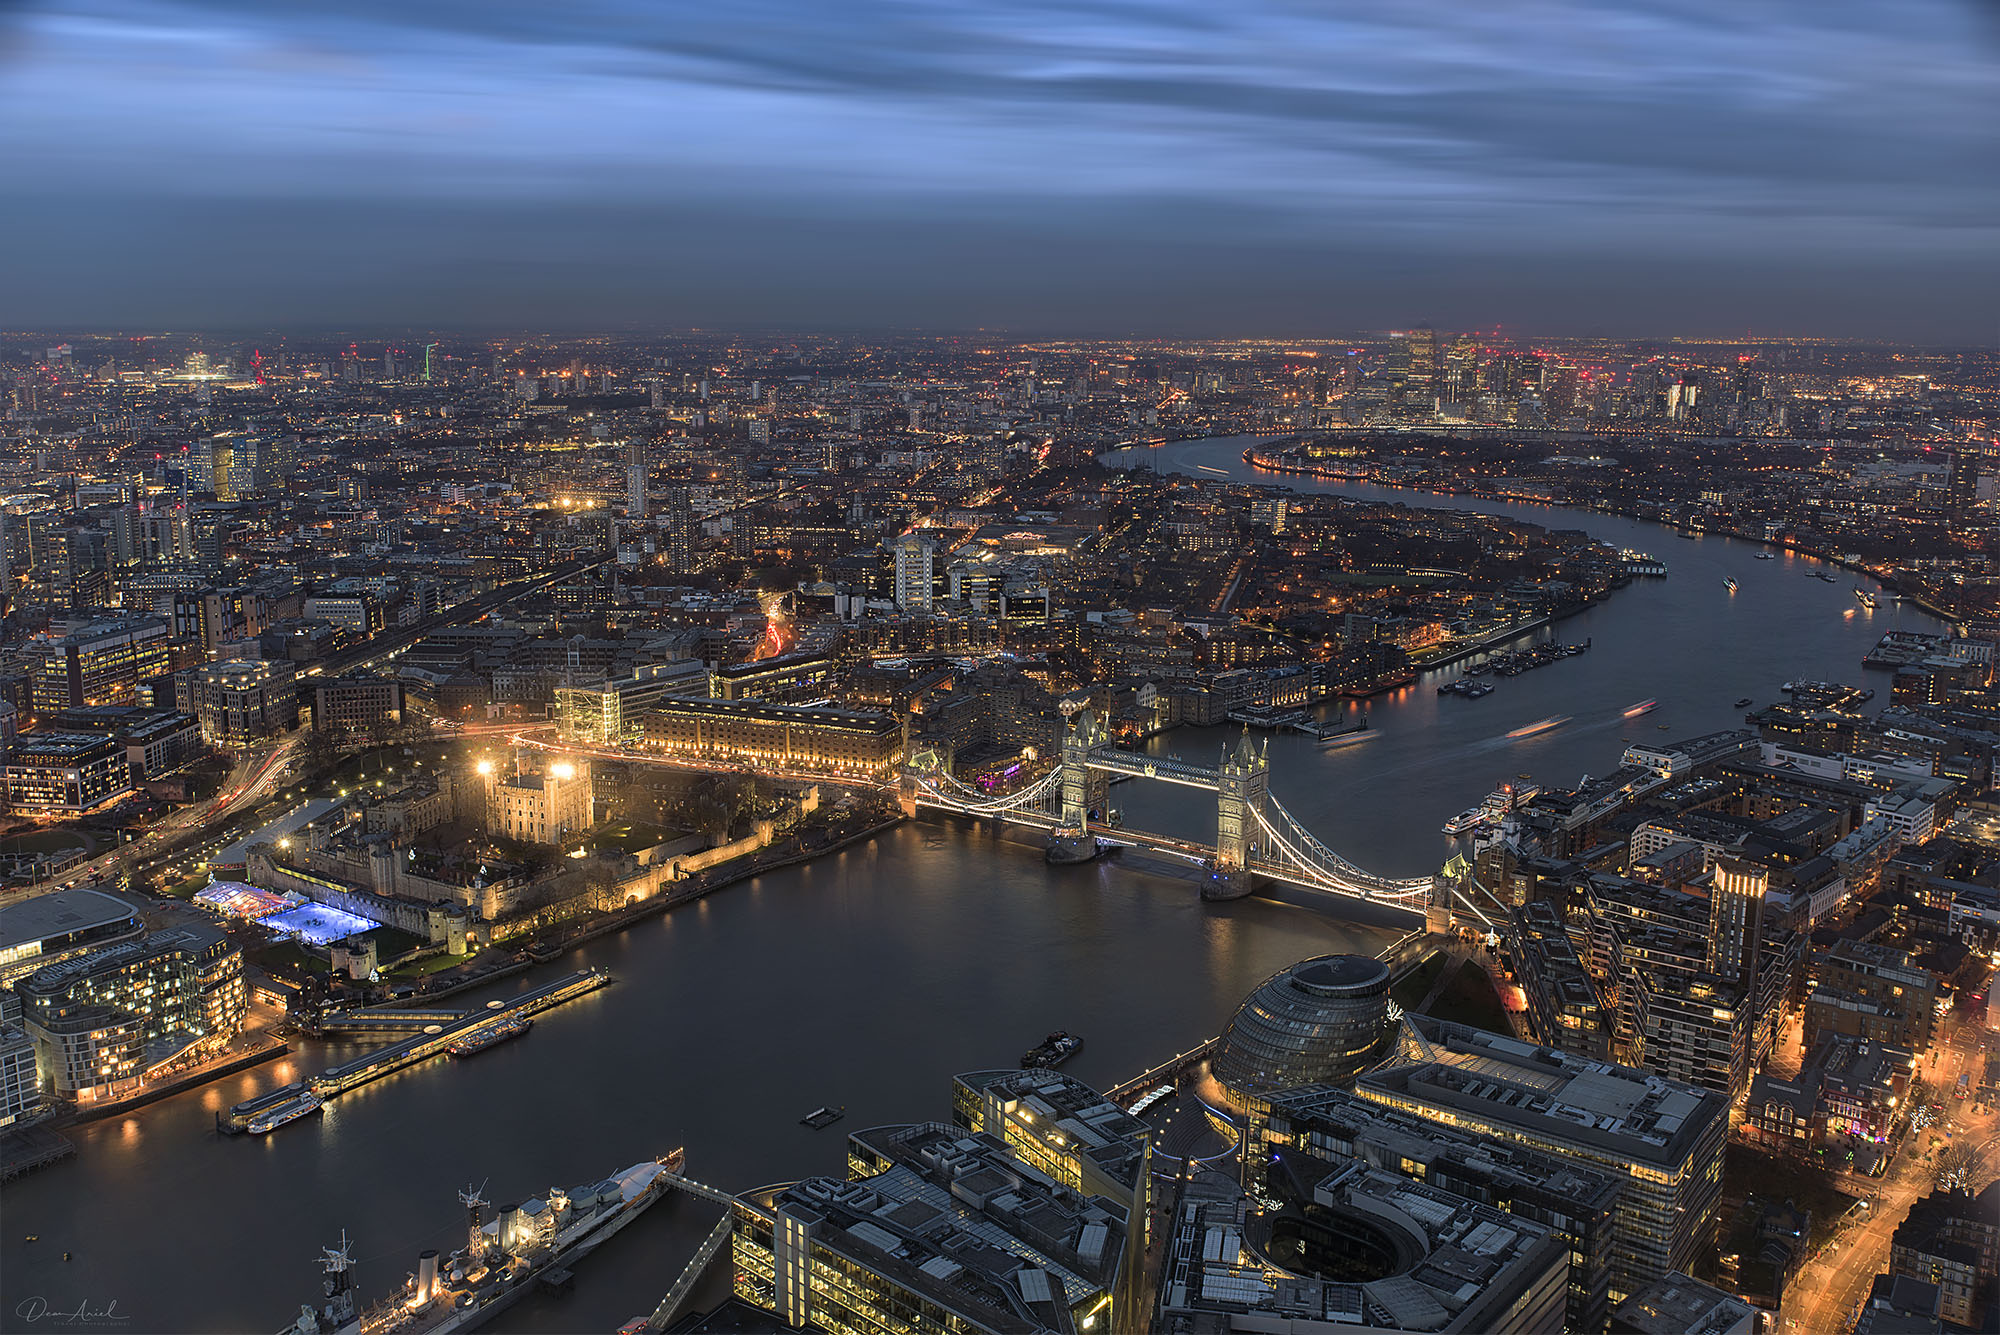 The view from the Shard, United Kingdom